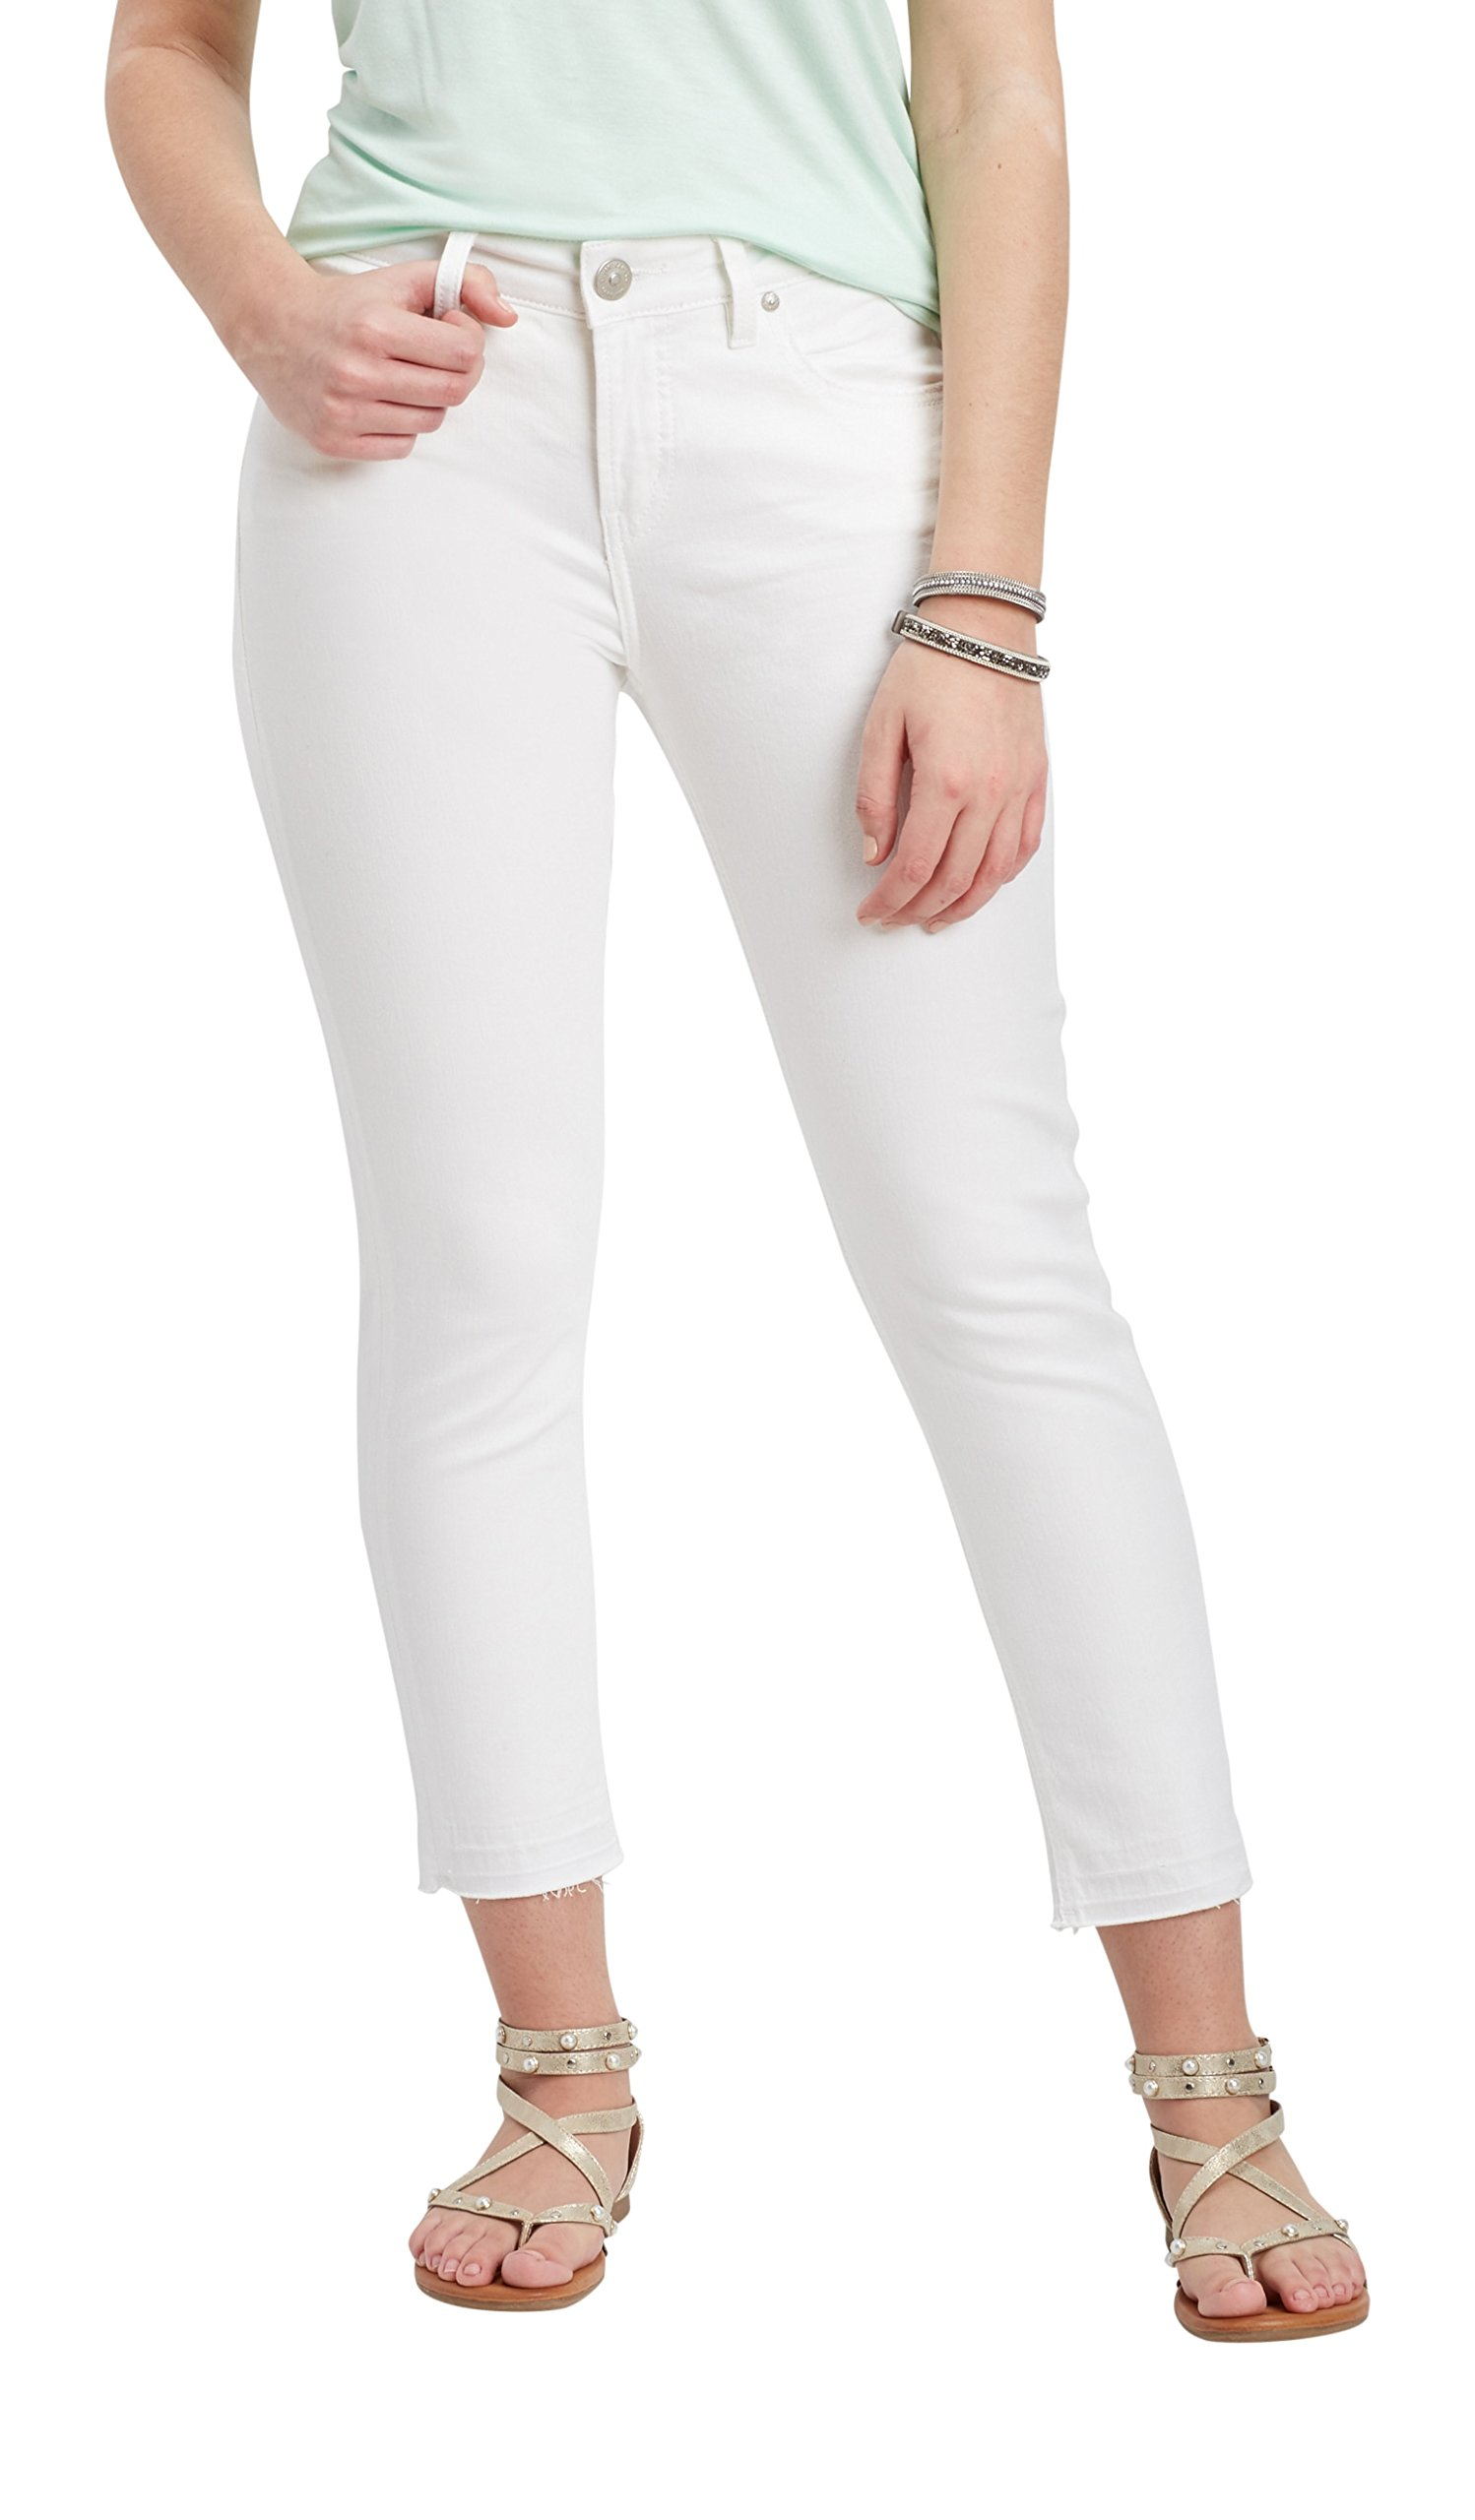 Silver Jeans Co. Women's Avery White High Rise Cropped Skinny Jean 29W White